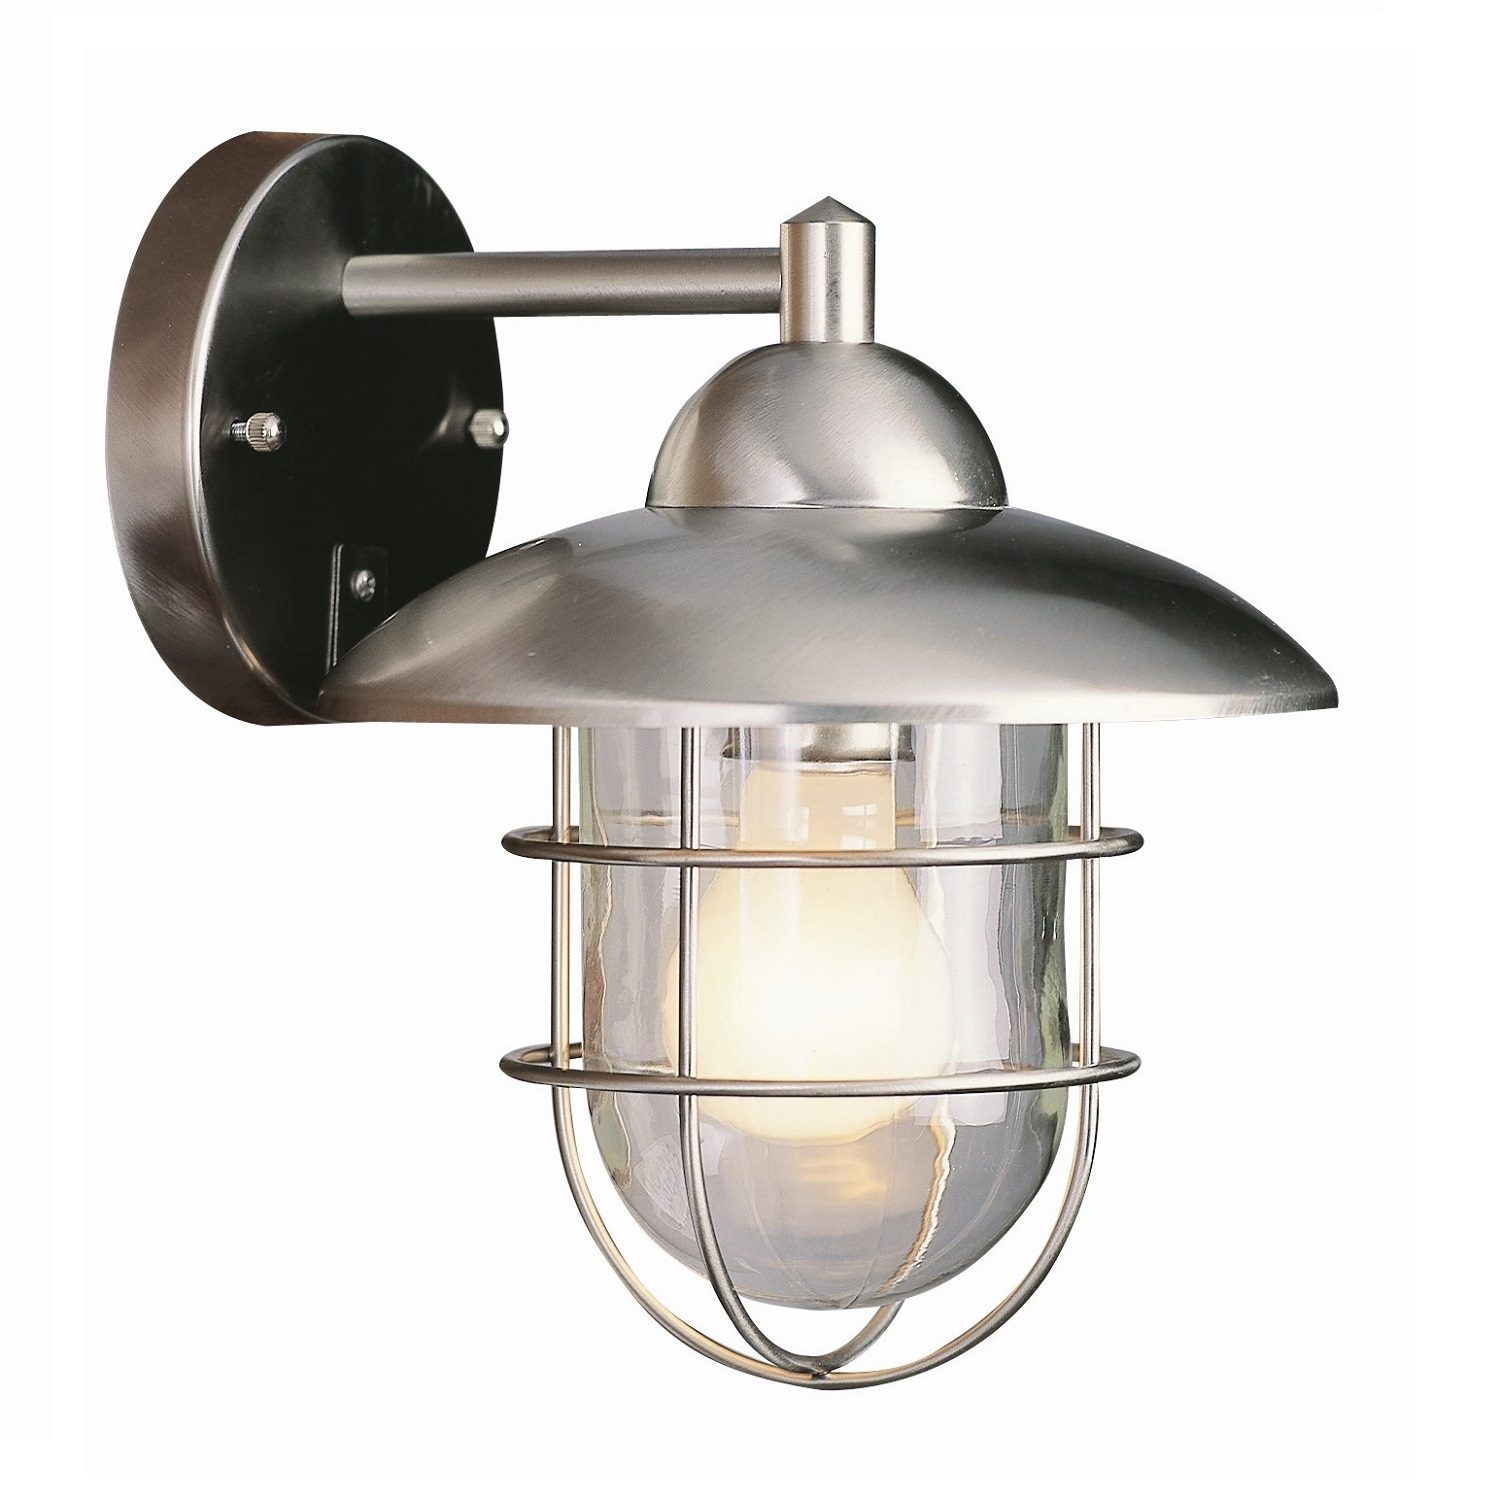 transglobe lighting 4370 st outdoor 1 light wall lantern l brilliant